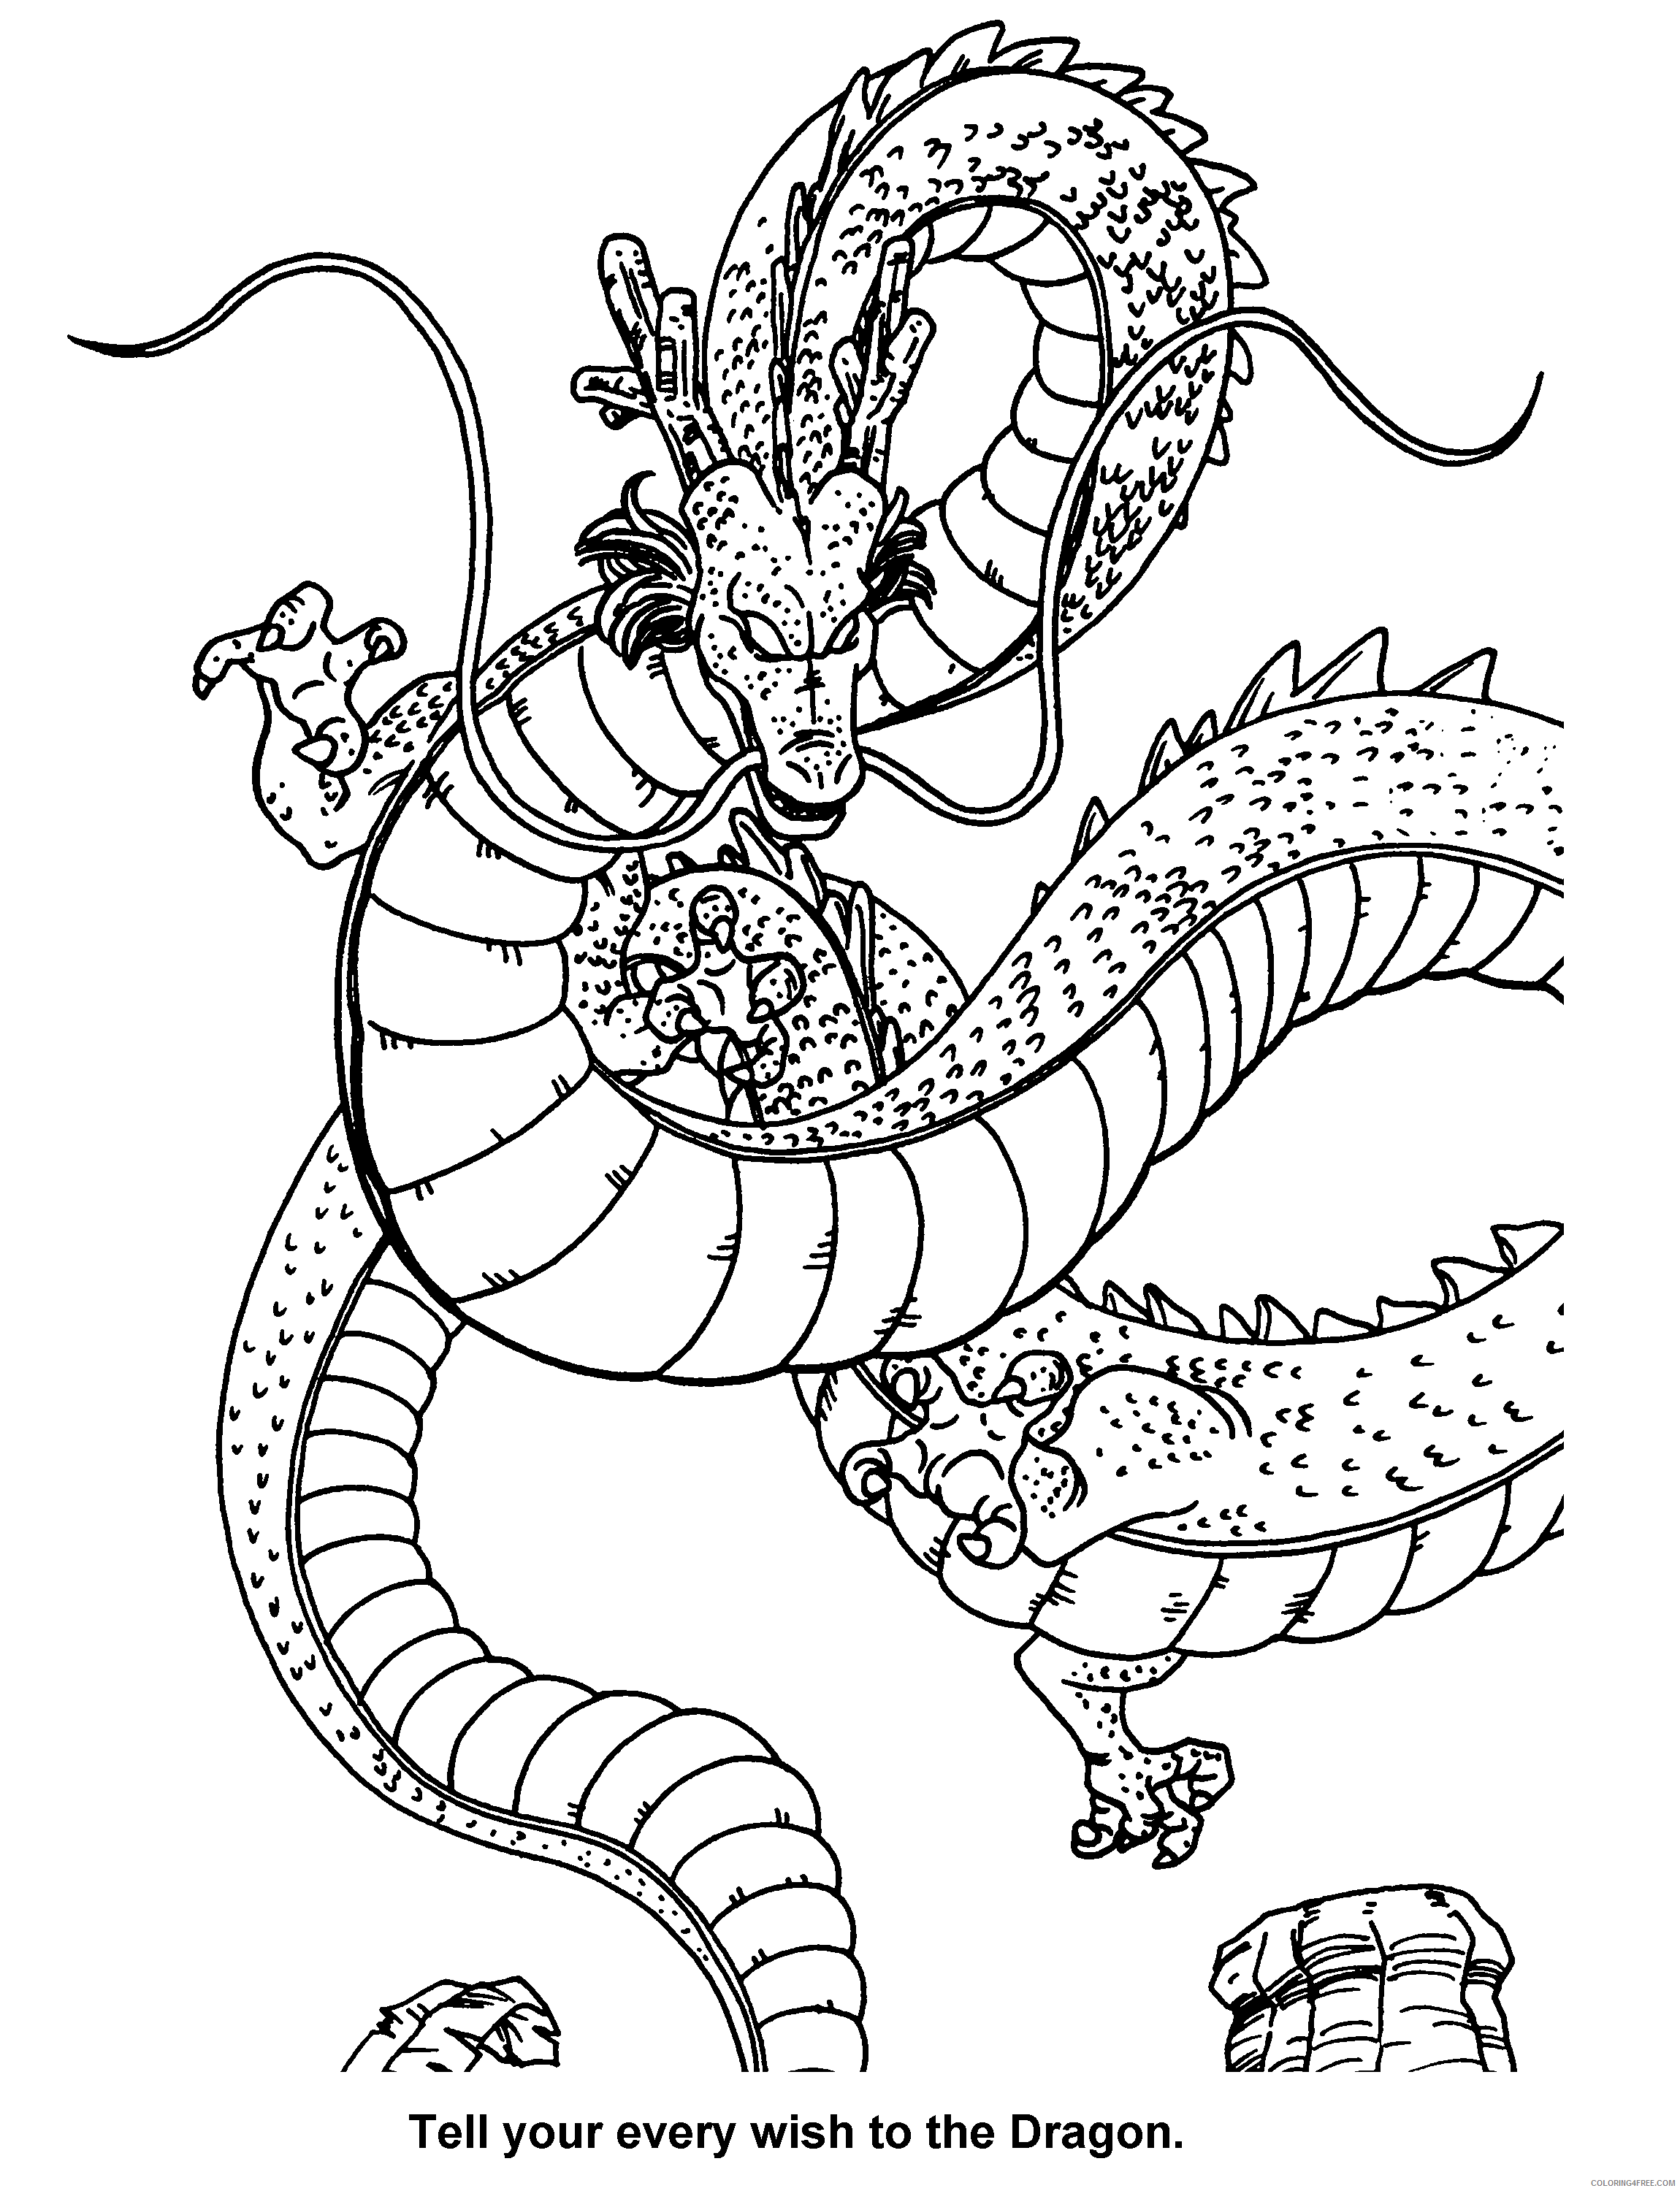 033 dragon ball z tell your every wish to the dragon Printable Coloring4free